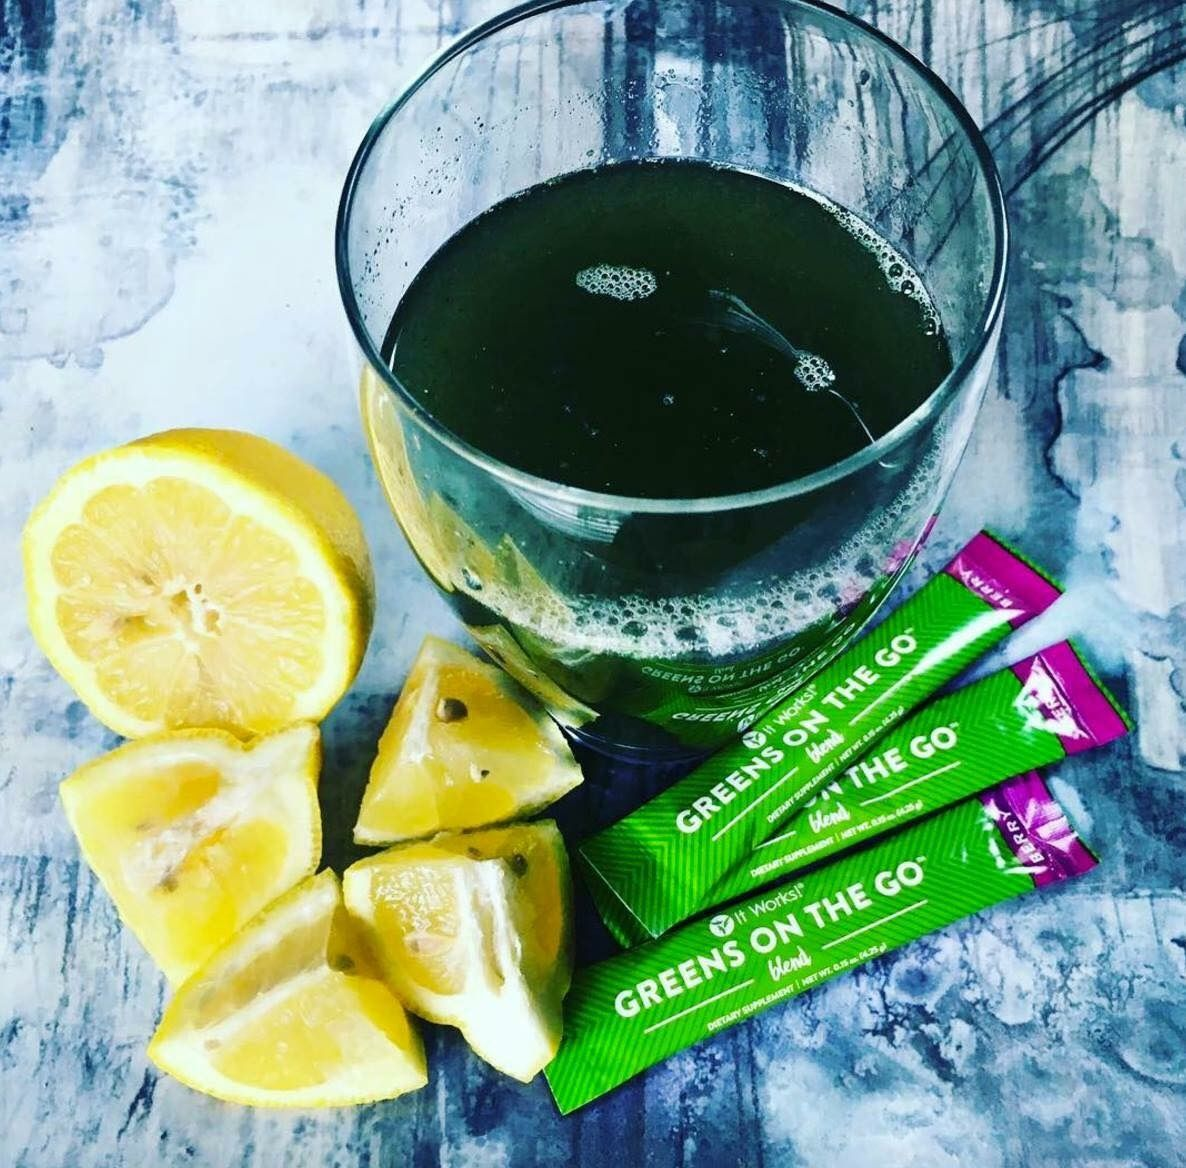 One glass. 🍹 34 fruits + veggies 🍉🥕 52 herbs + superfoods 🌱🥑 Matcha Green Tea 🍵 Soy Free, Dairy Free, Gluten Free 🚫 Vegan 🌿 No artificial flavors/sweeteners 🚫  Text Brittany 907-306-9489